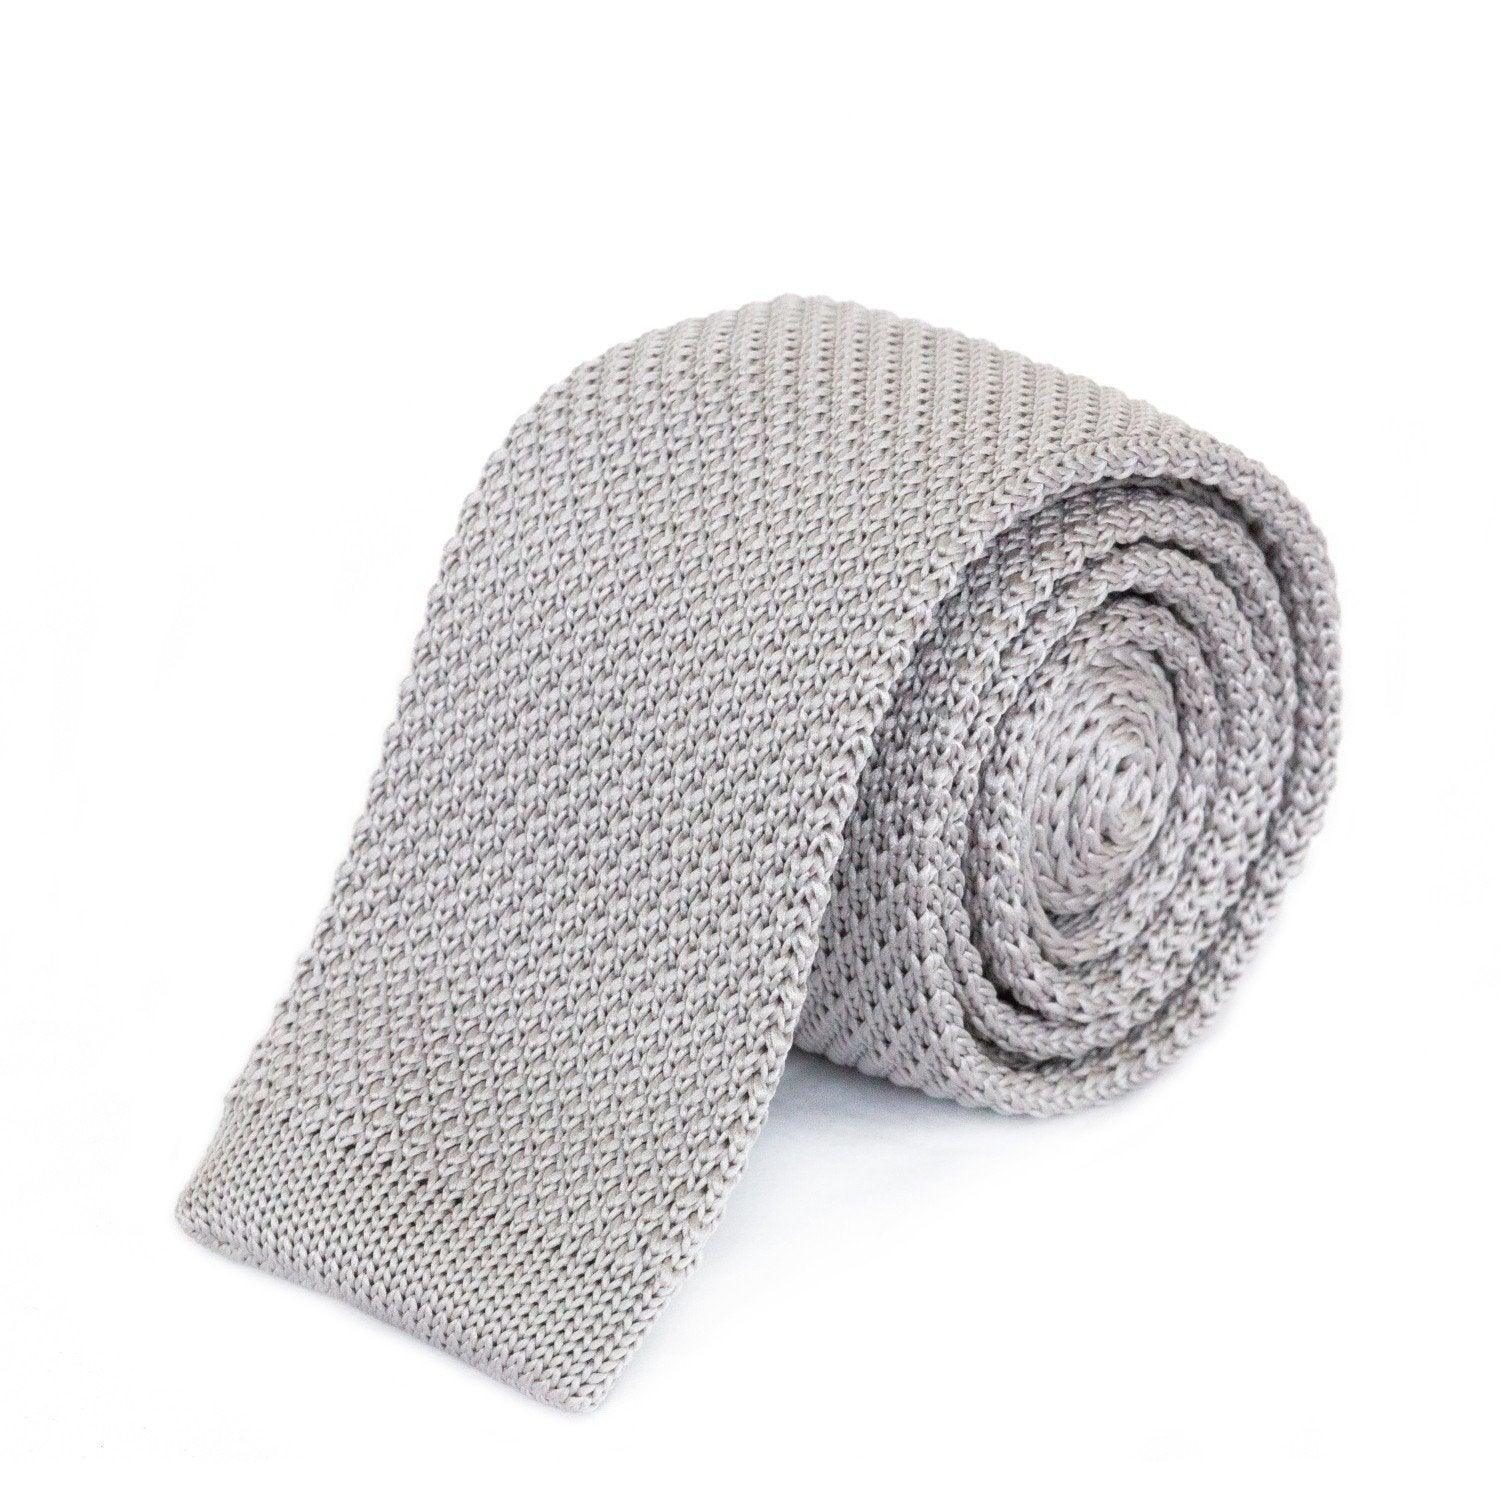 Light Grey Knit Tie Ties Cuffed.com.au